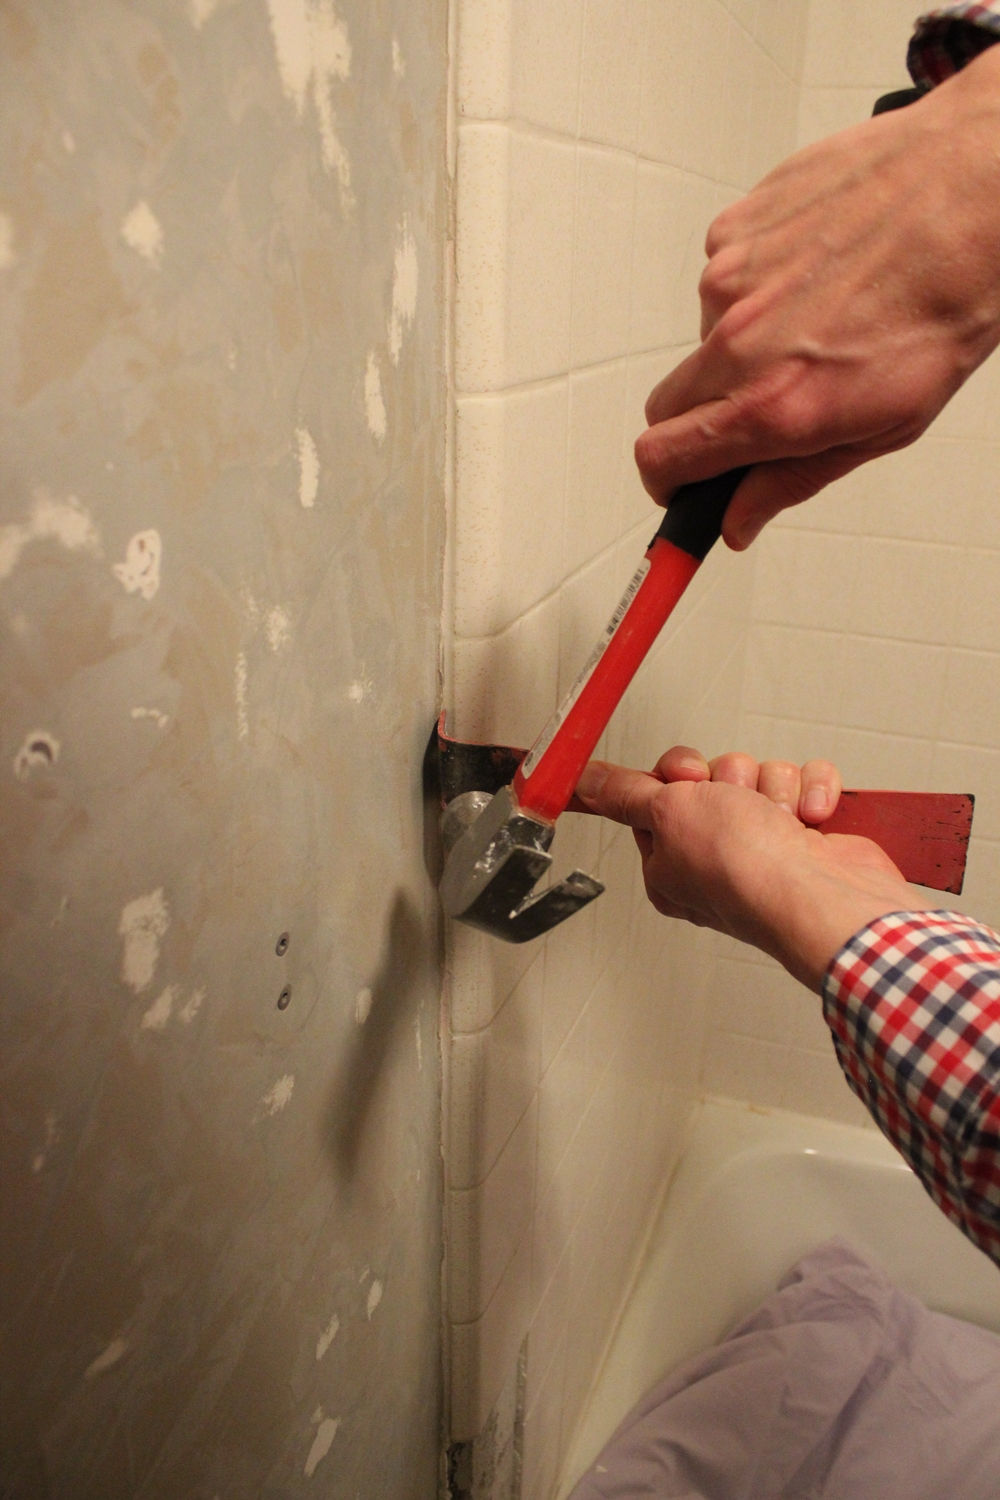 DIY Remove Tub Surround Tile - with hammer